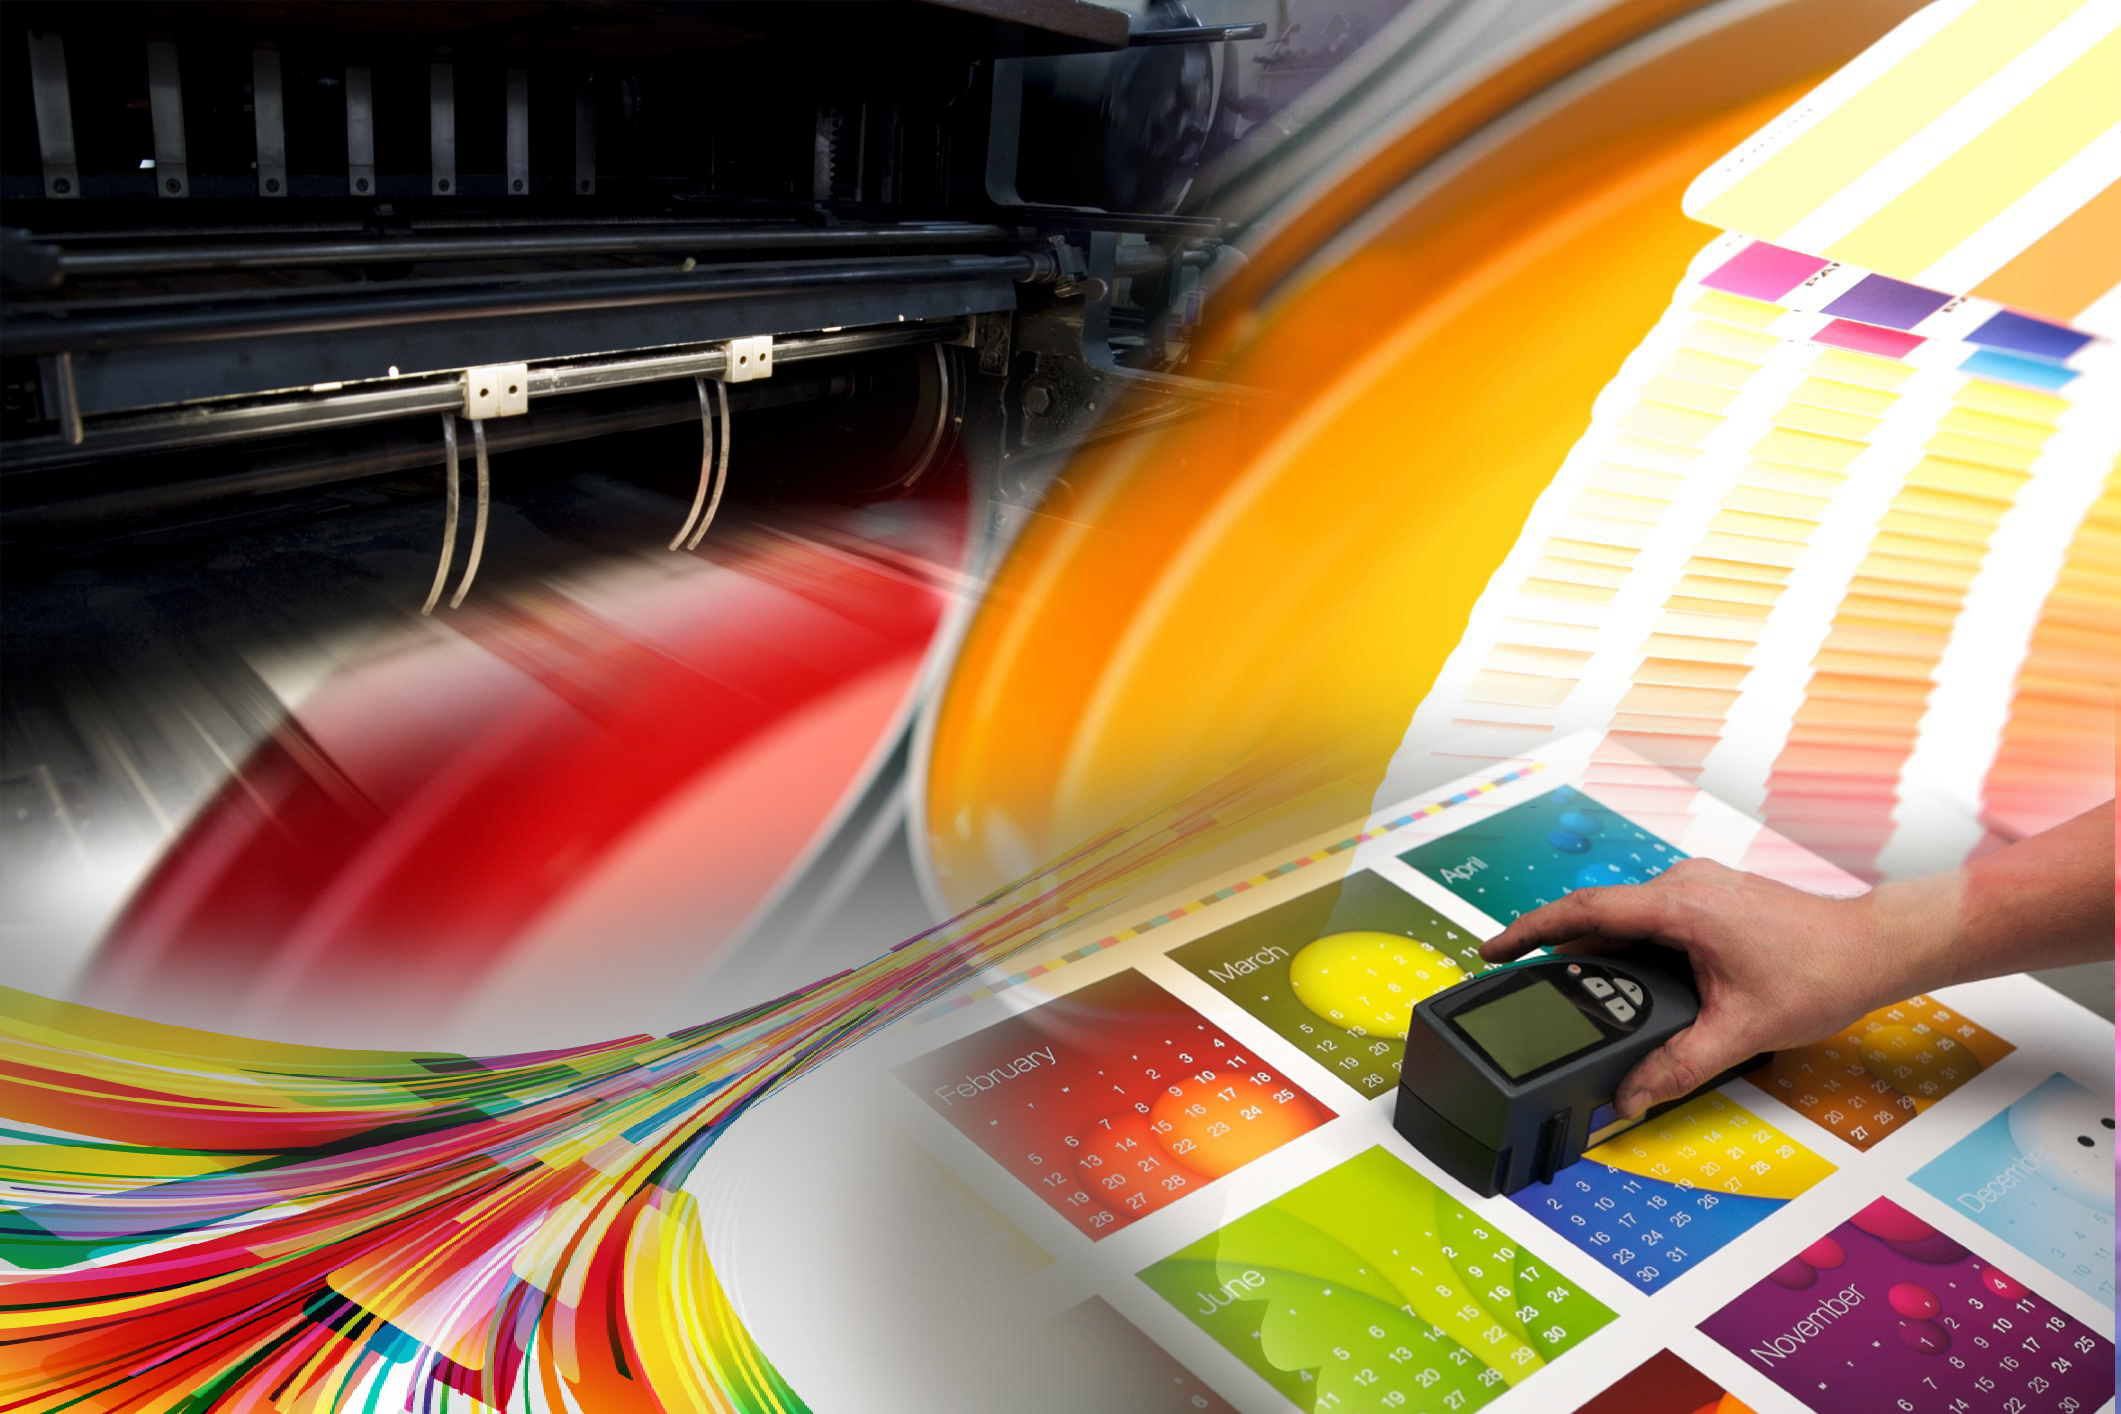 Color Printing - New York City, NYC, Manhattan, The Bronx, Brooklyn, Queens, Staten Island, New York, NY